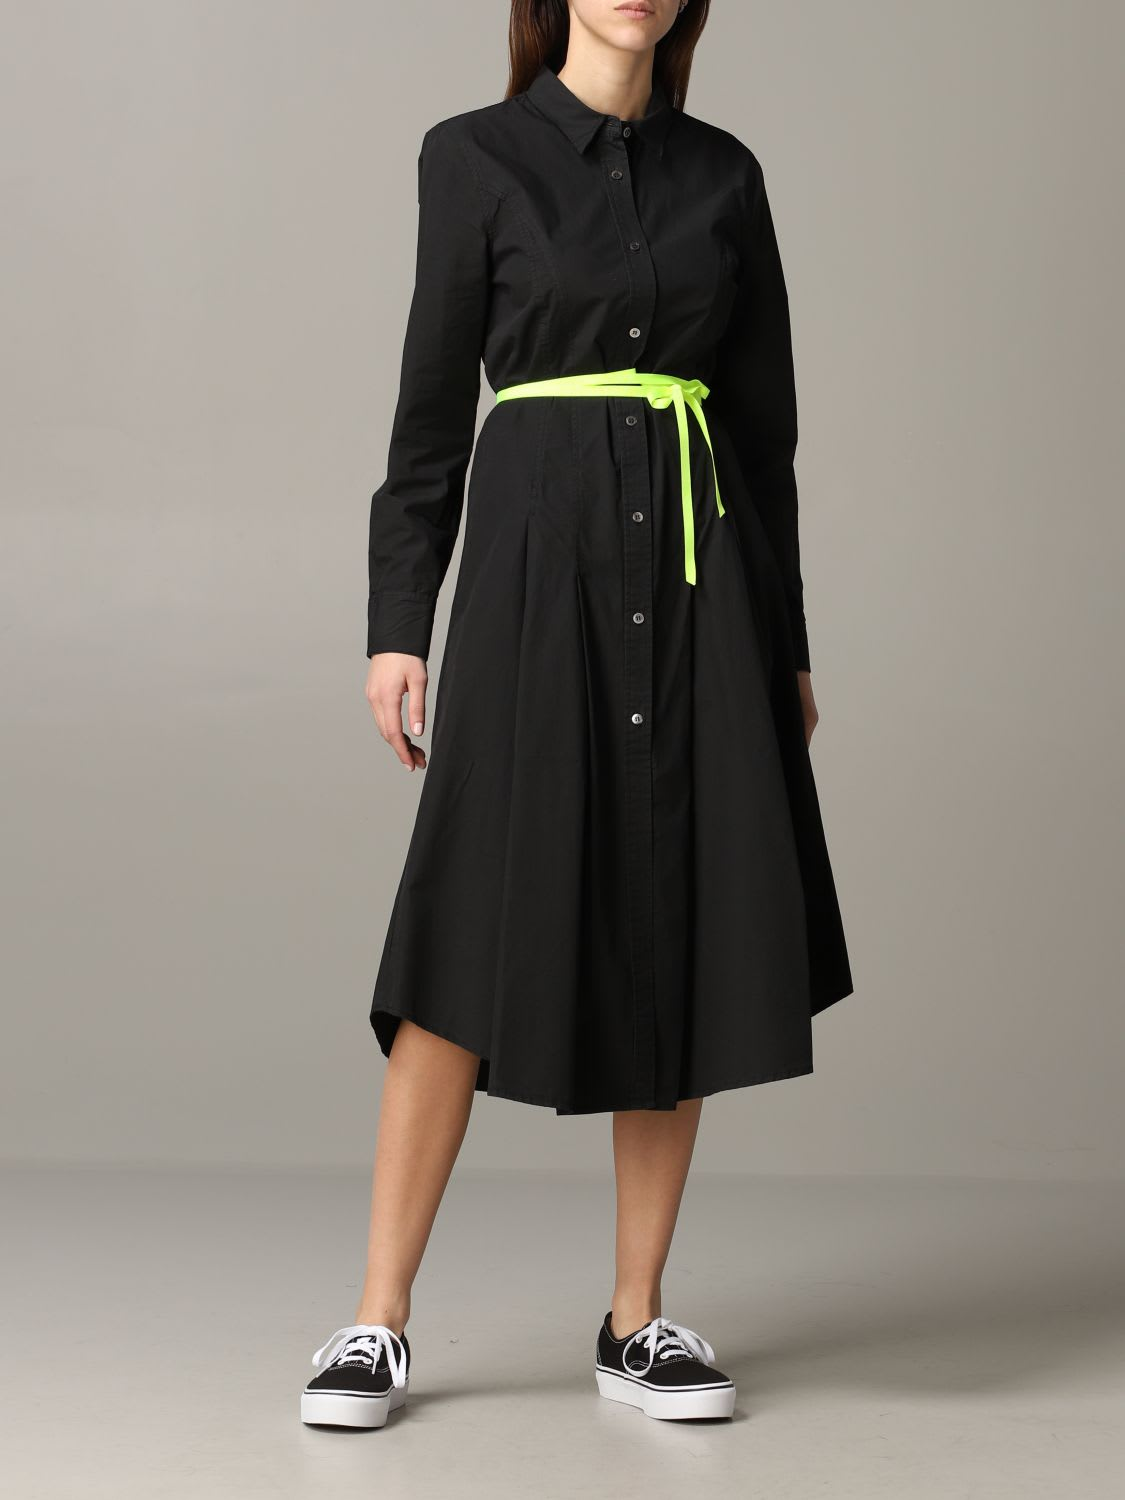 Buy Department 5 Dress Department 5 Poplin Dress With Fluorescent Belt online, shop Department 5 with free shipping